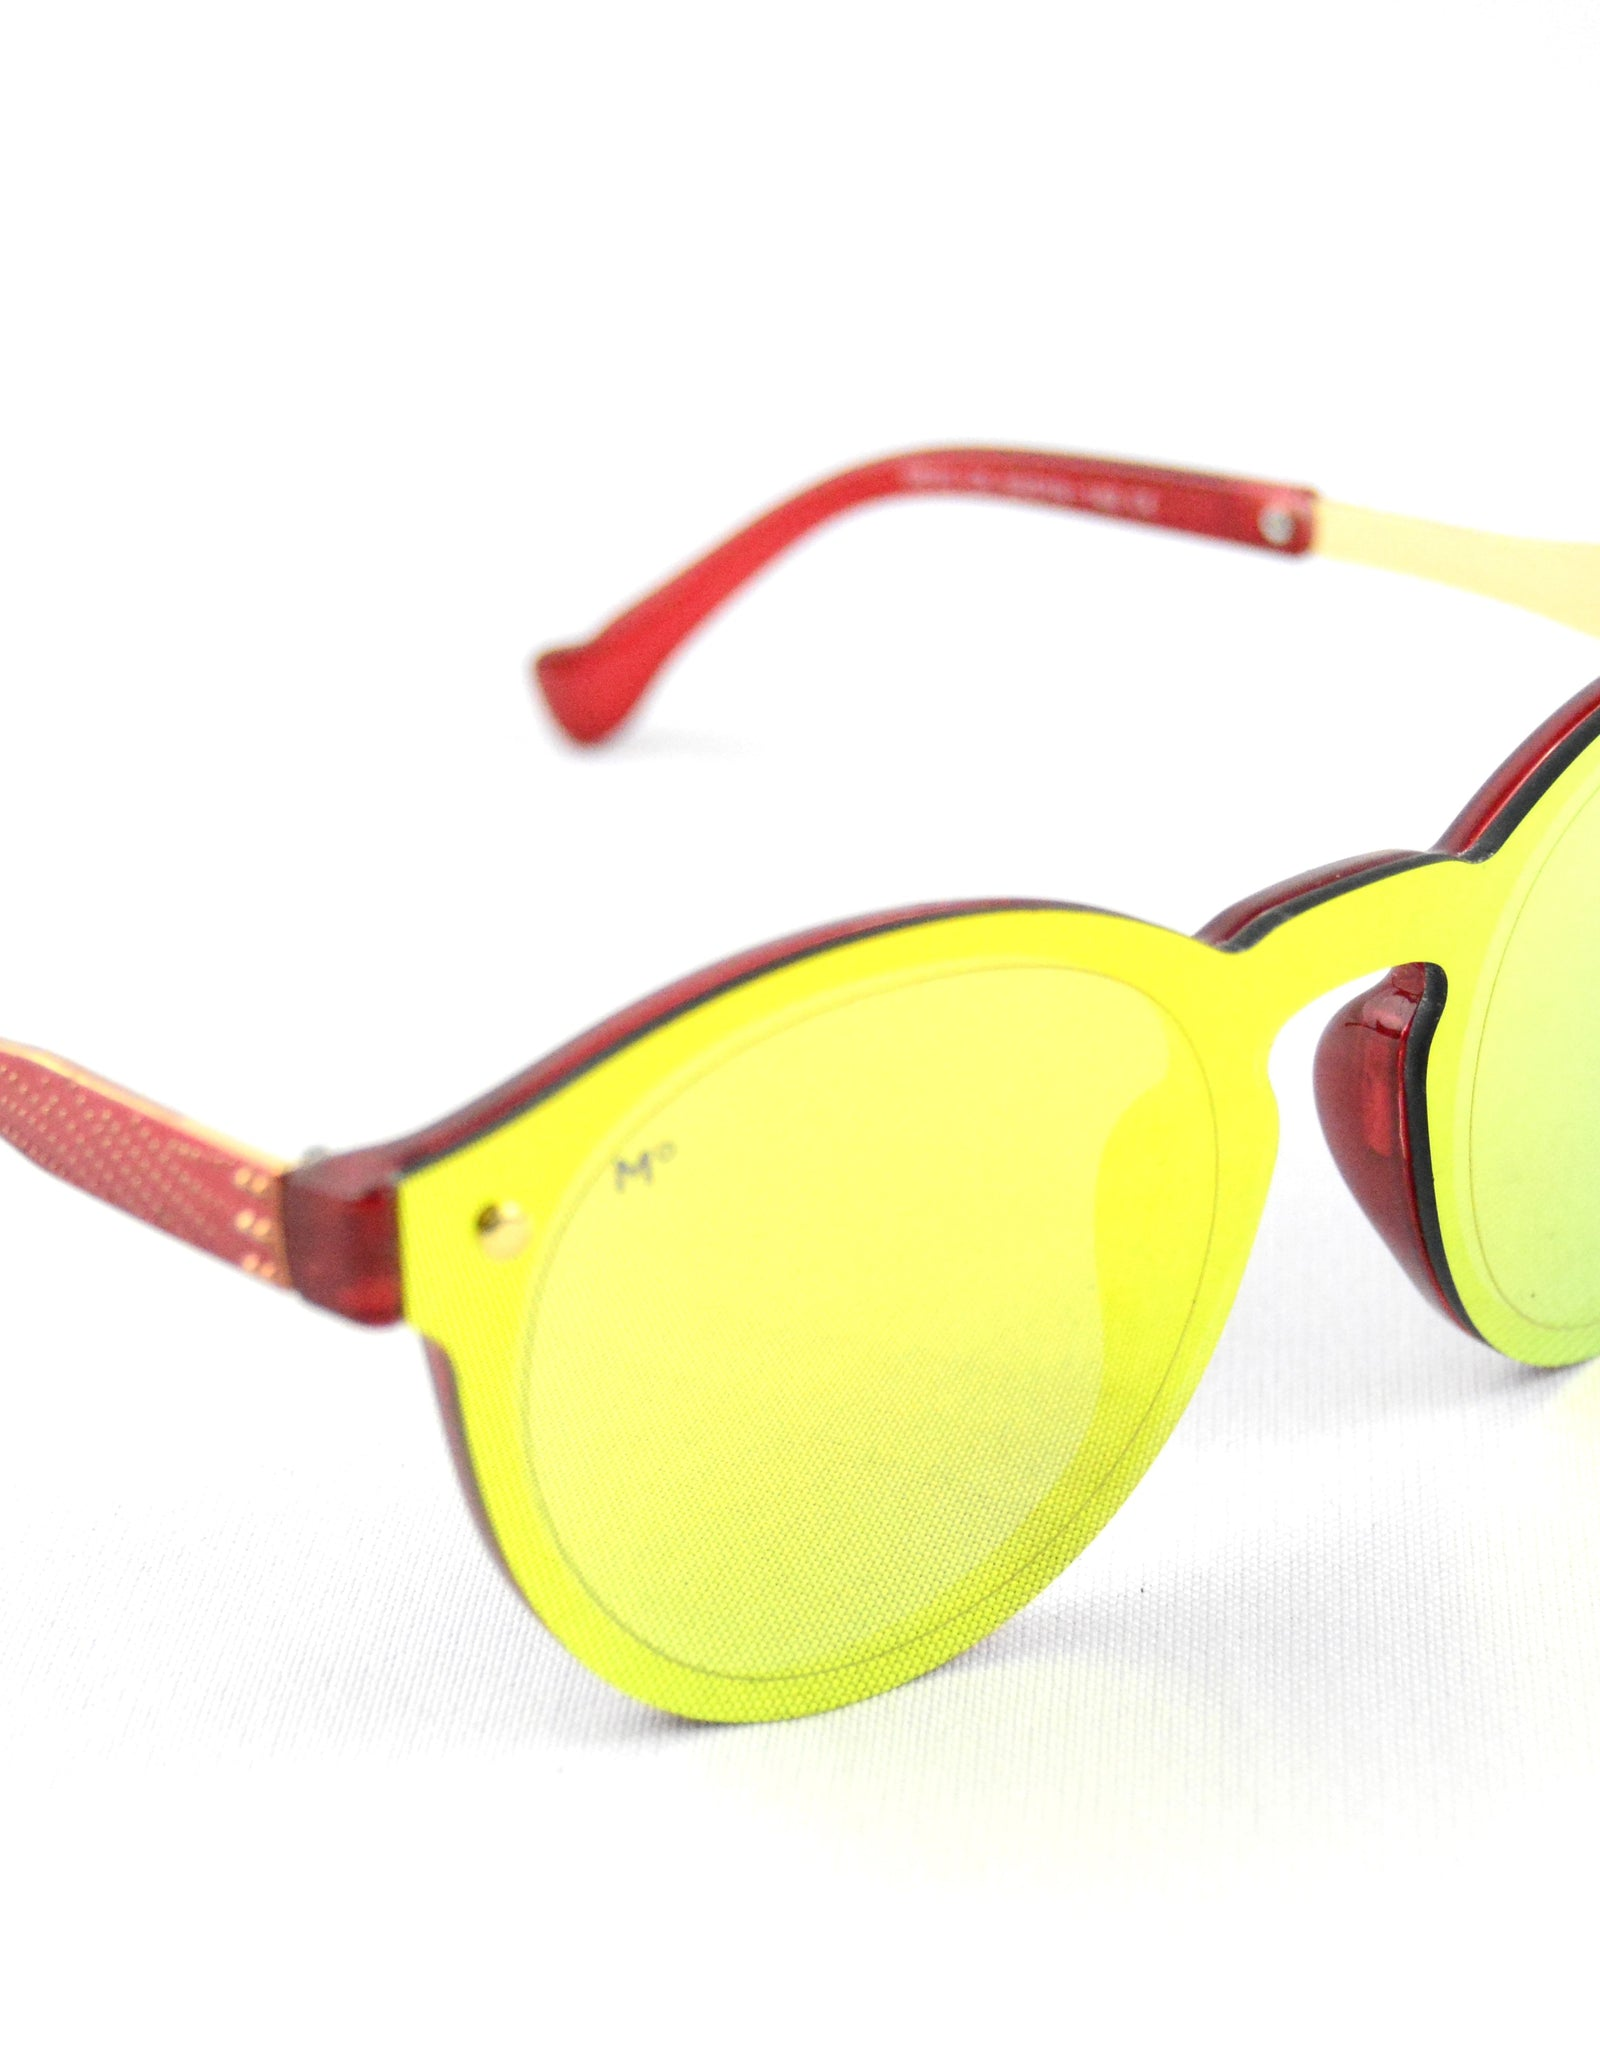 Lentes de sol Brighton Golden/Red